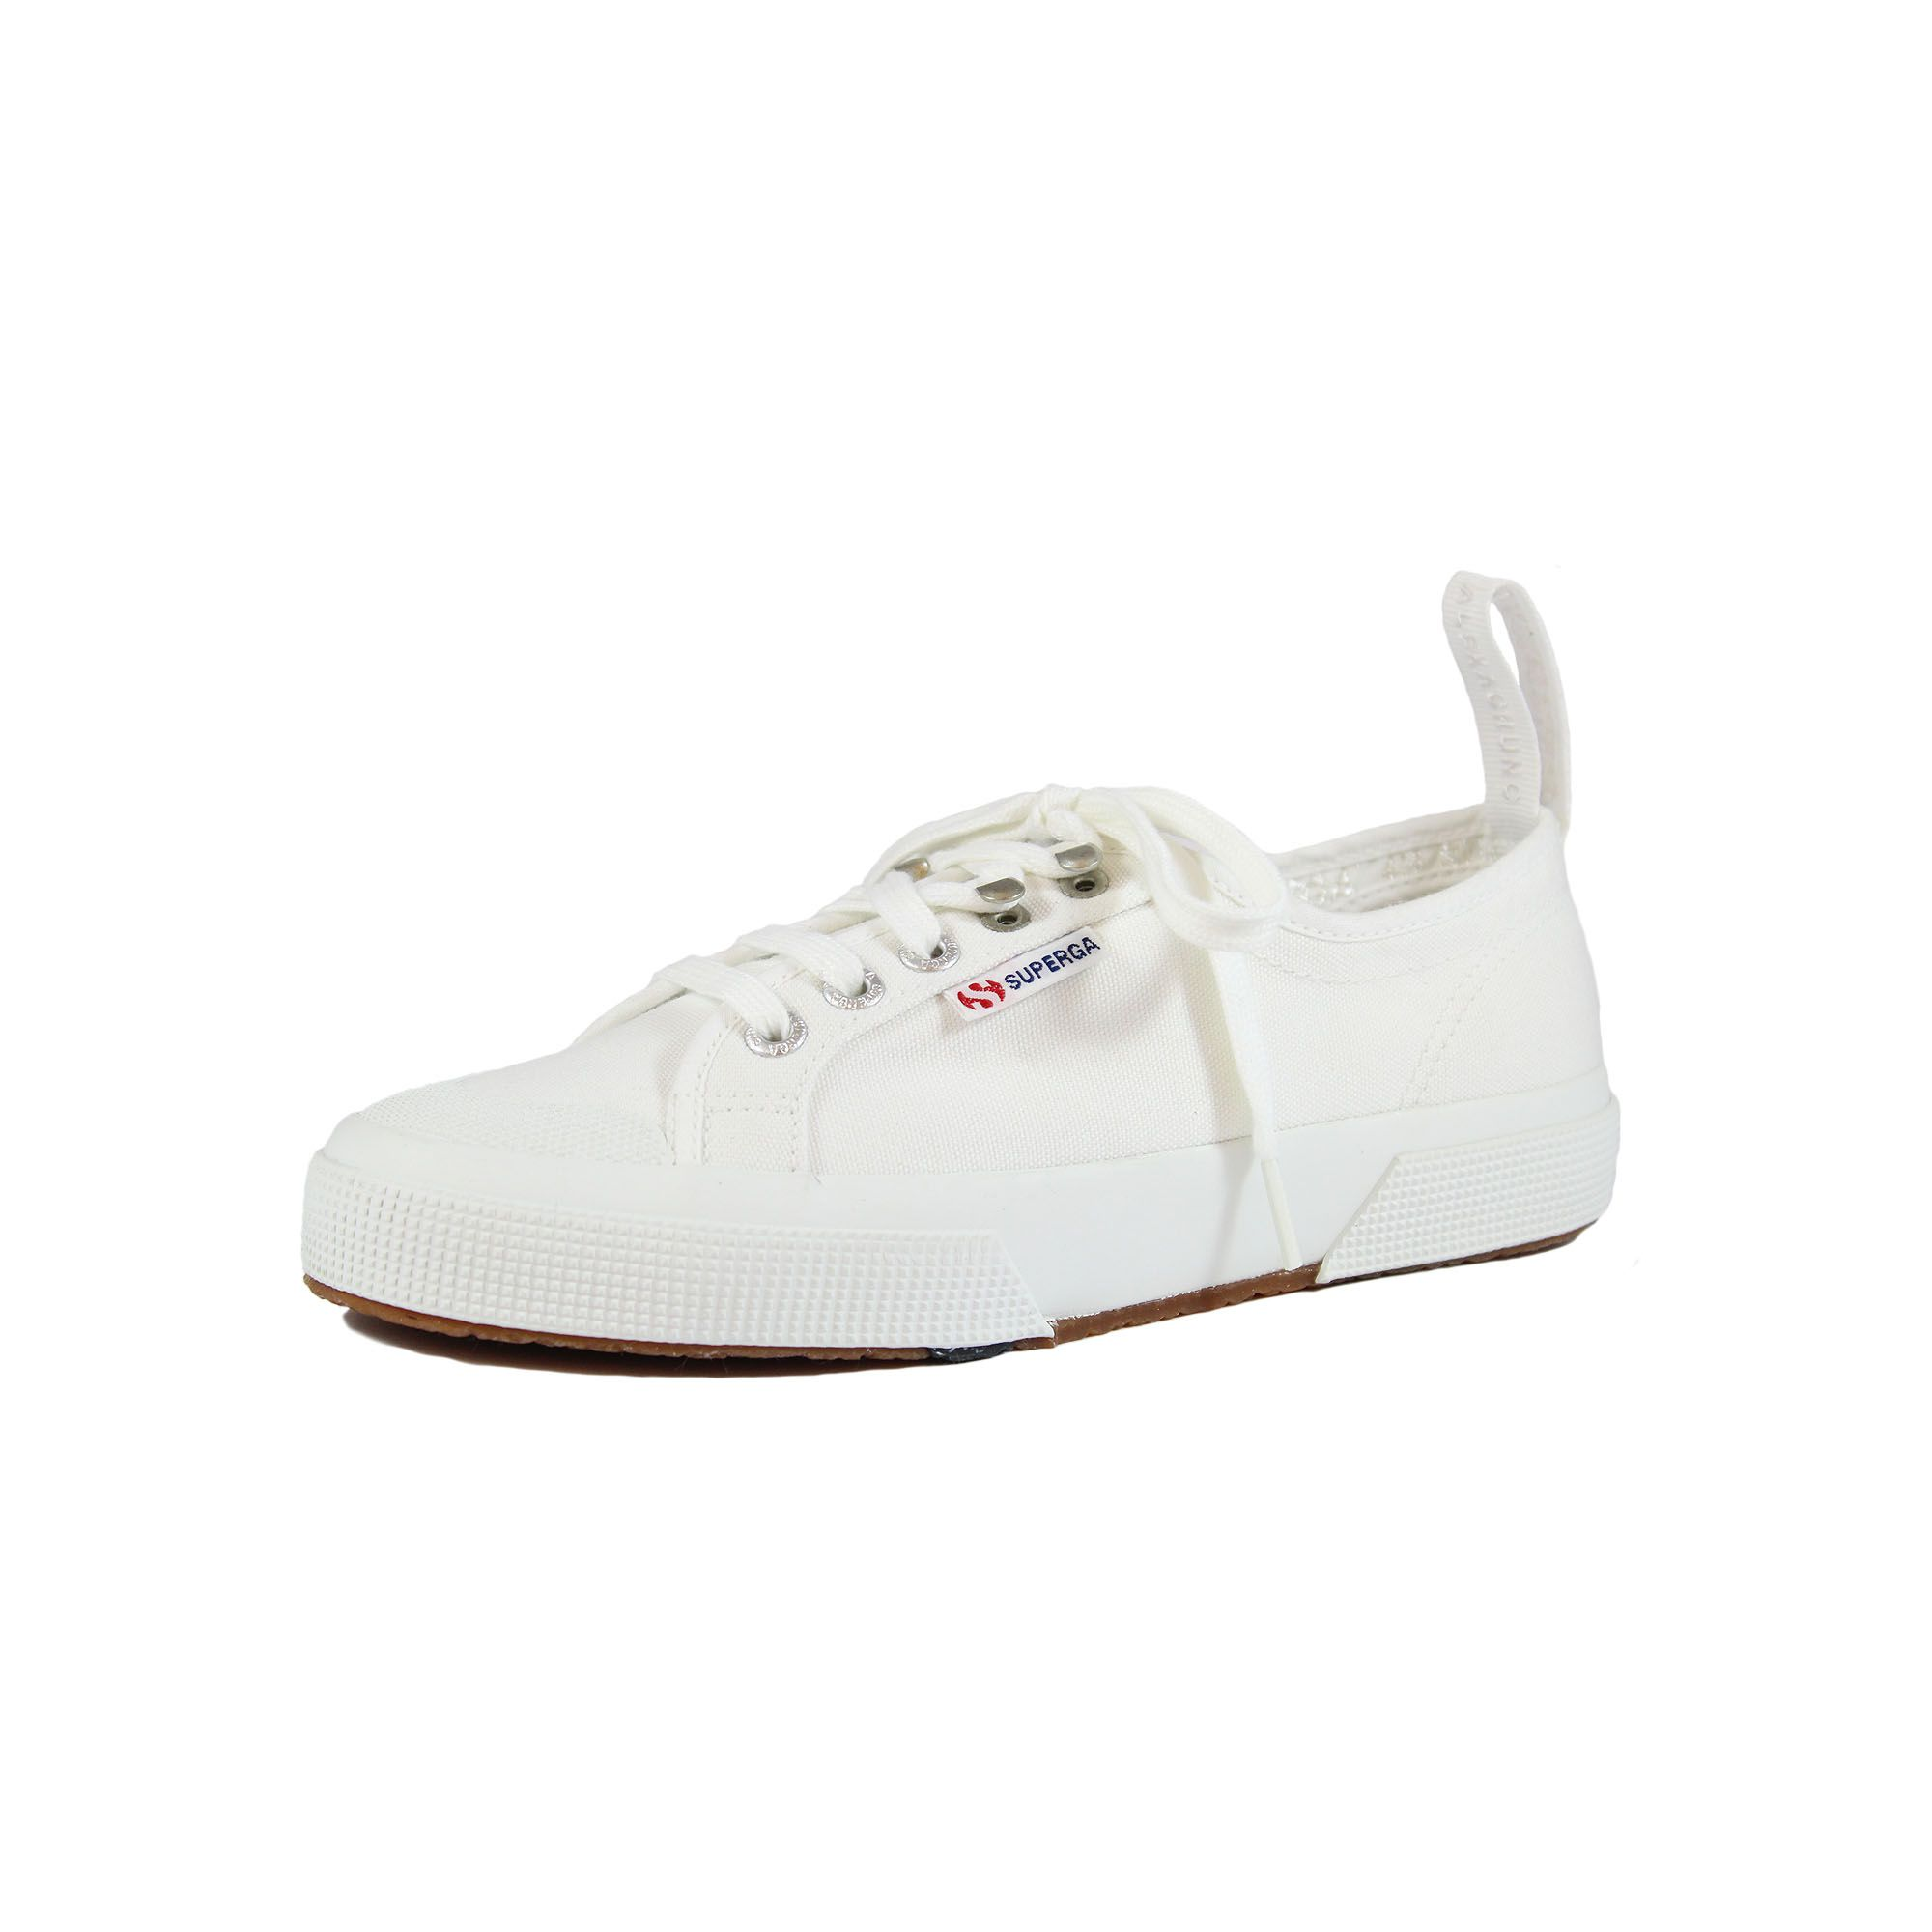 2294 COTU COTHOOKW WHITE